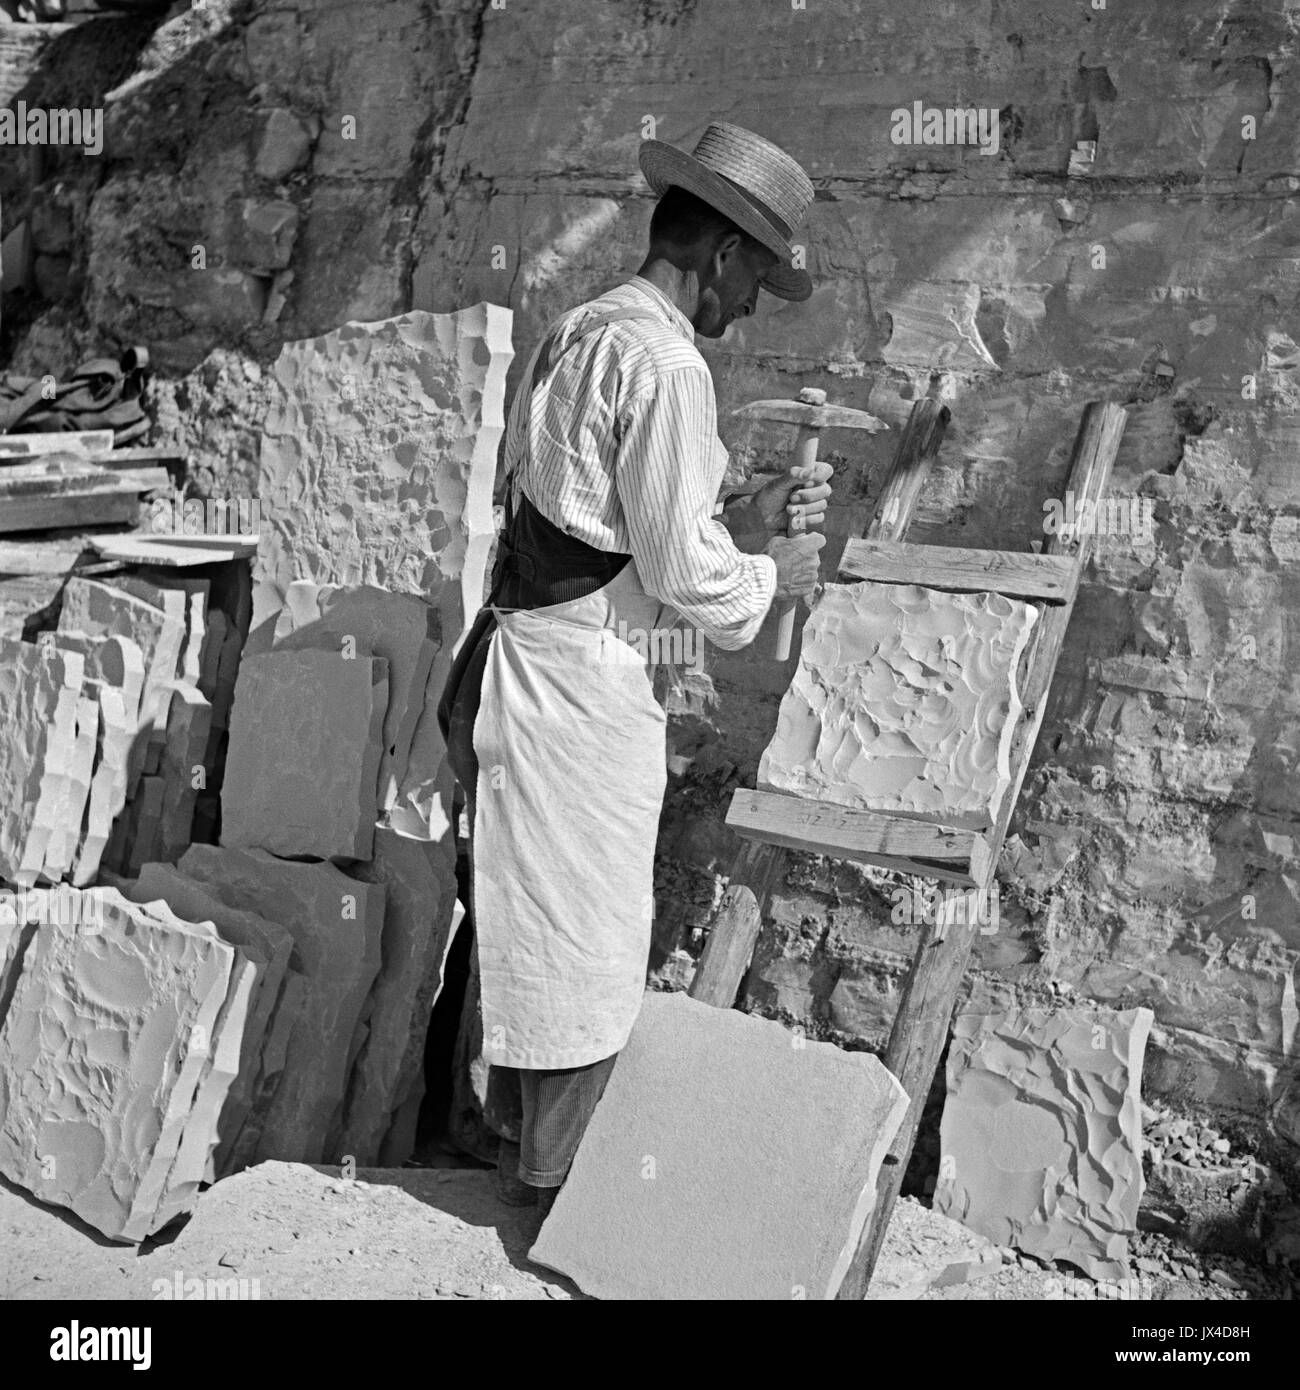 Stonemason working on slab in lithographic limestone quarry. - Stock Image